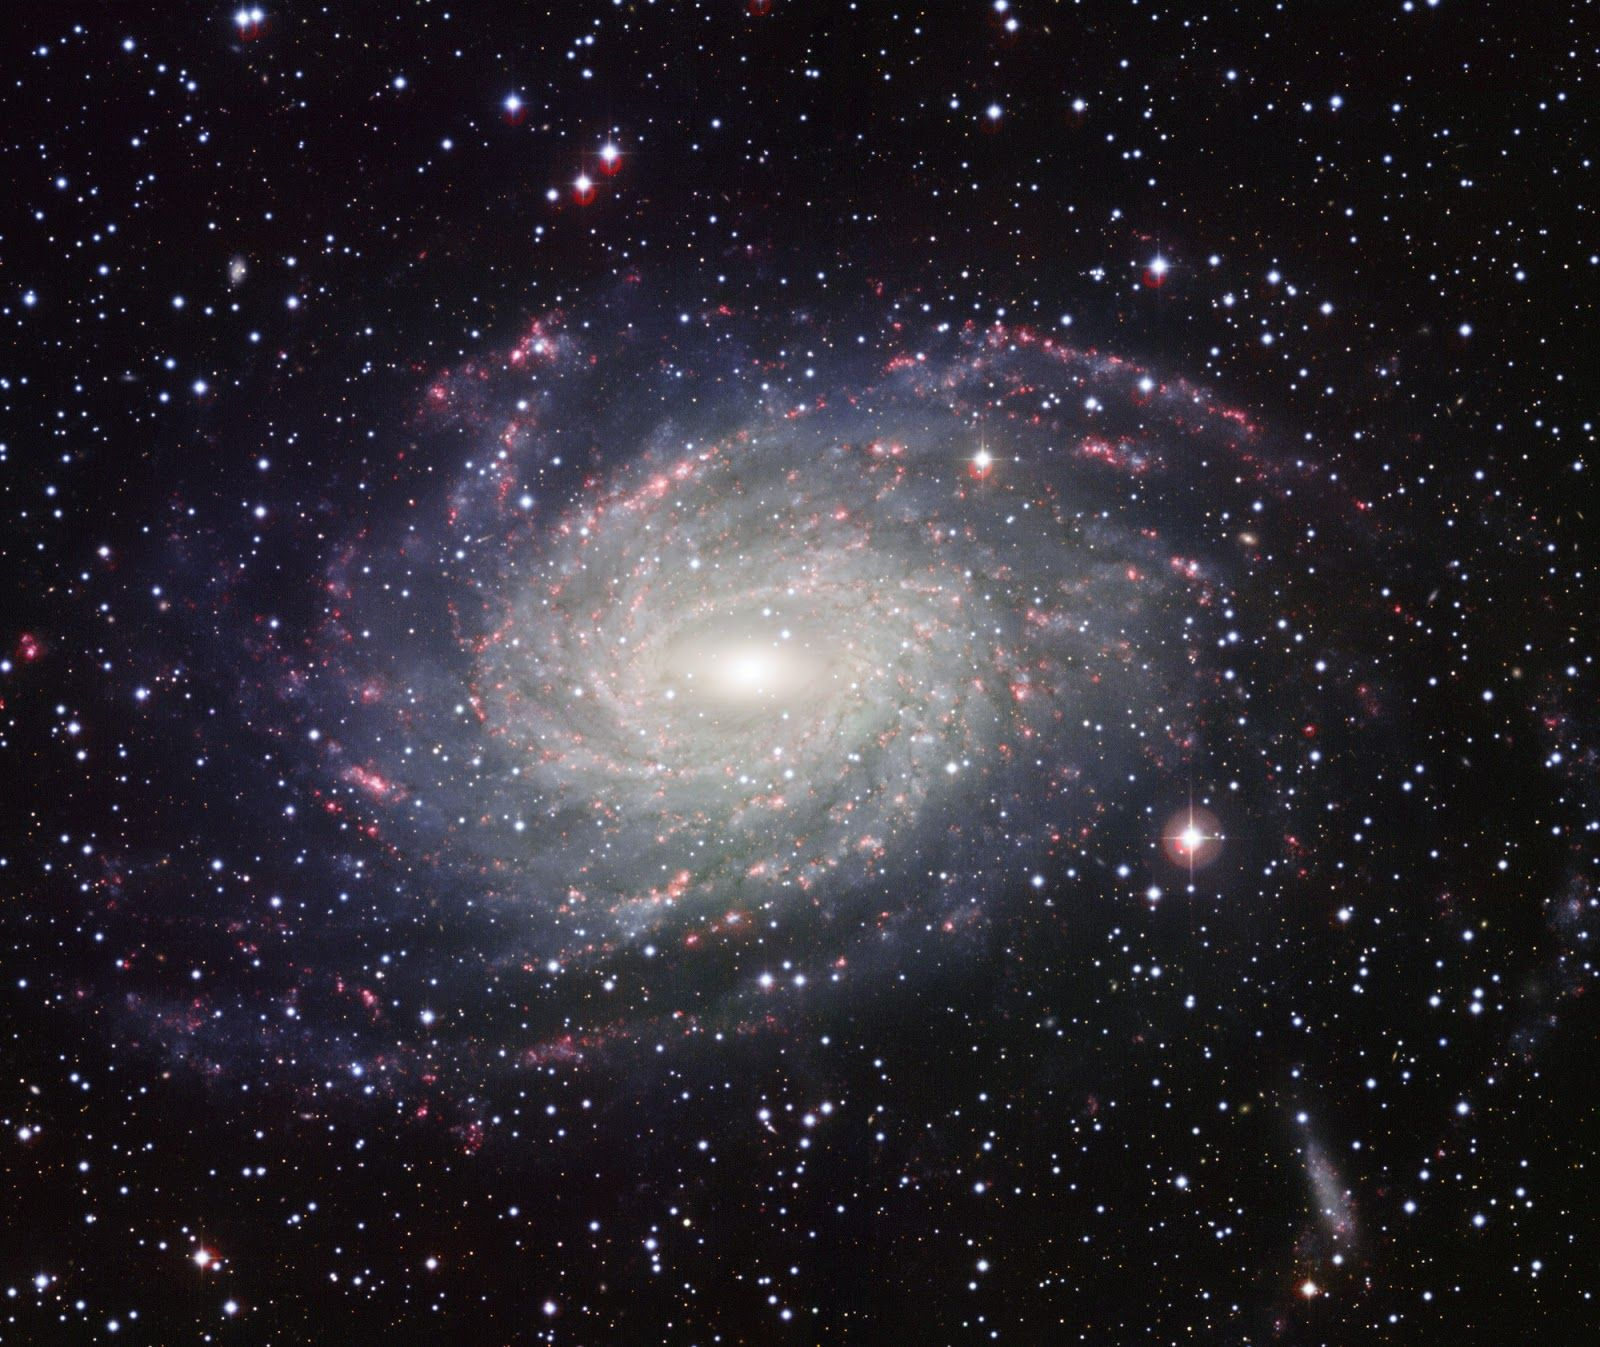 A spiral galaxy that resembles our Milky Way   Earth Blog